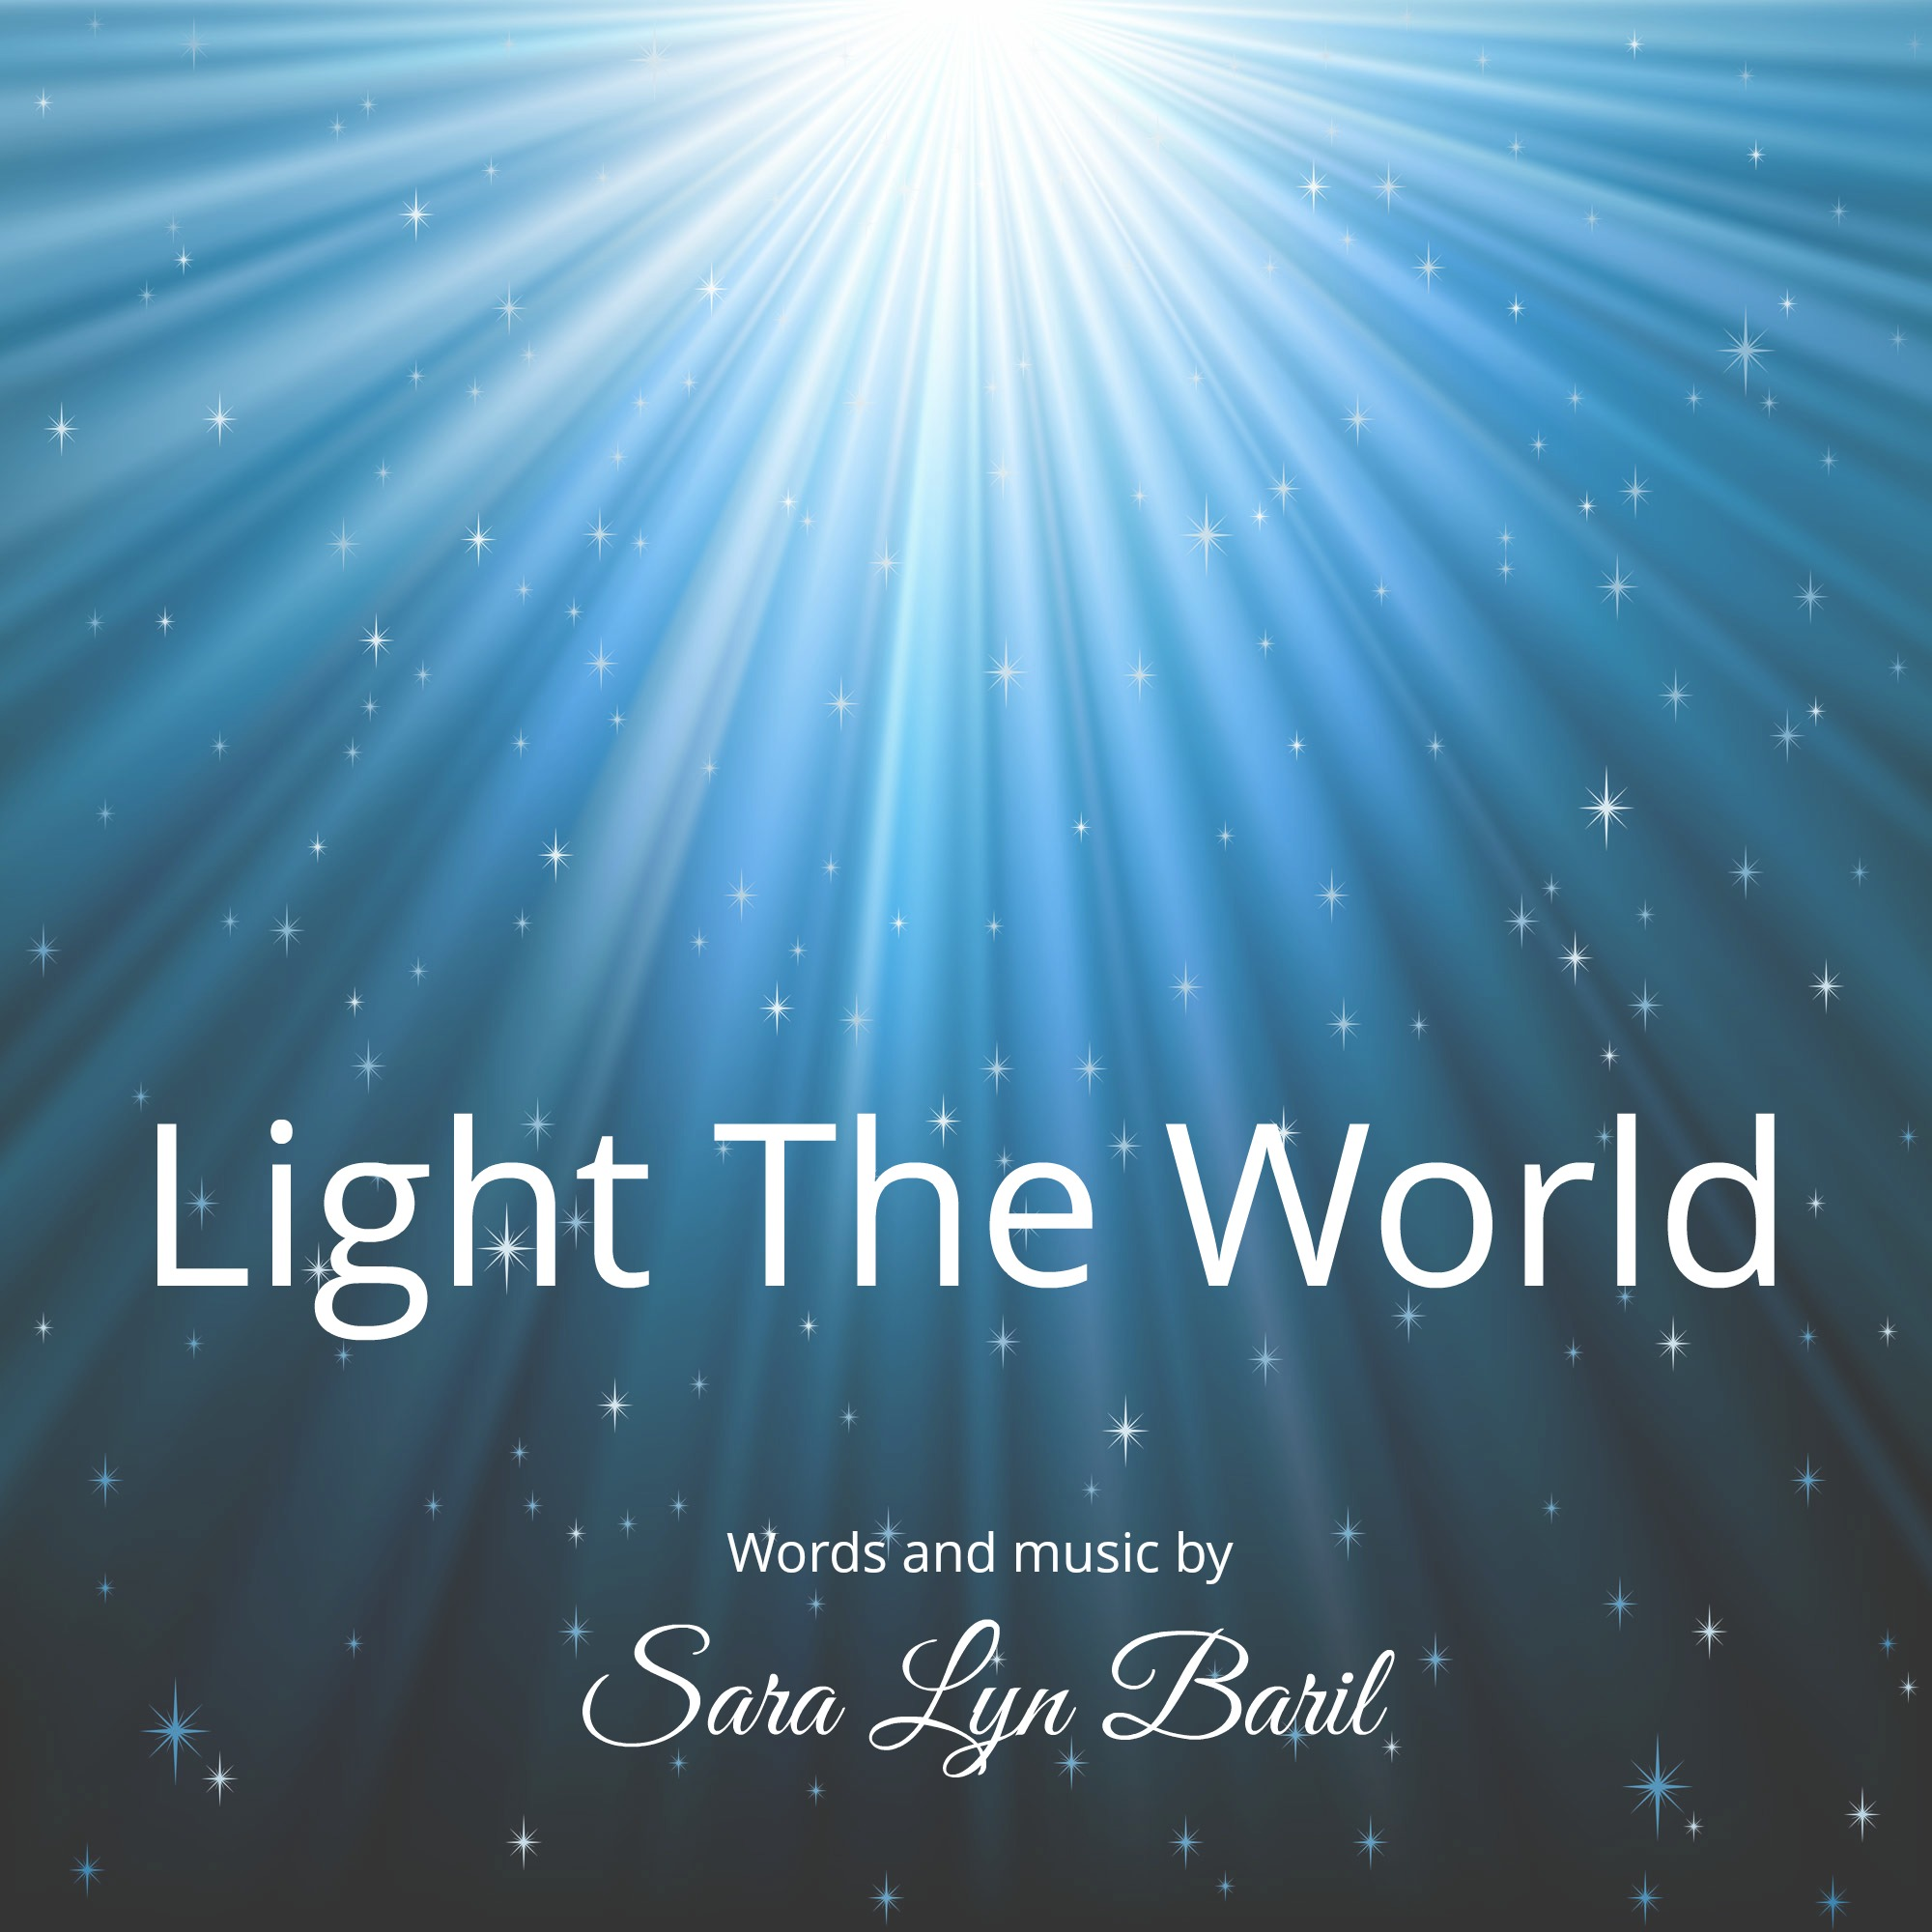 Light_the_world